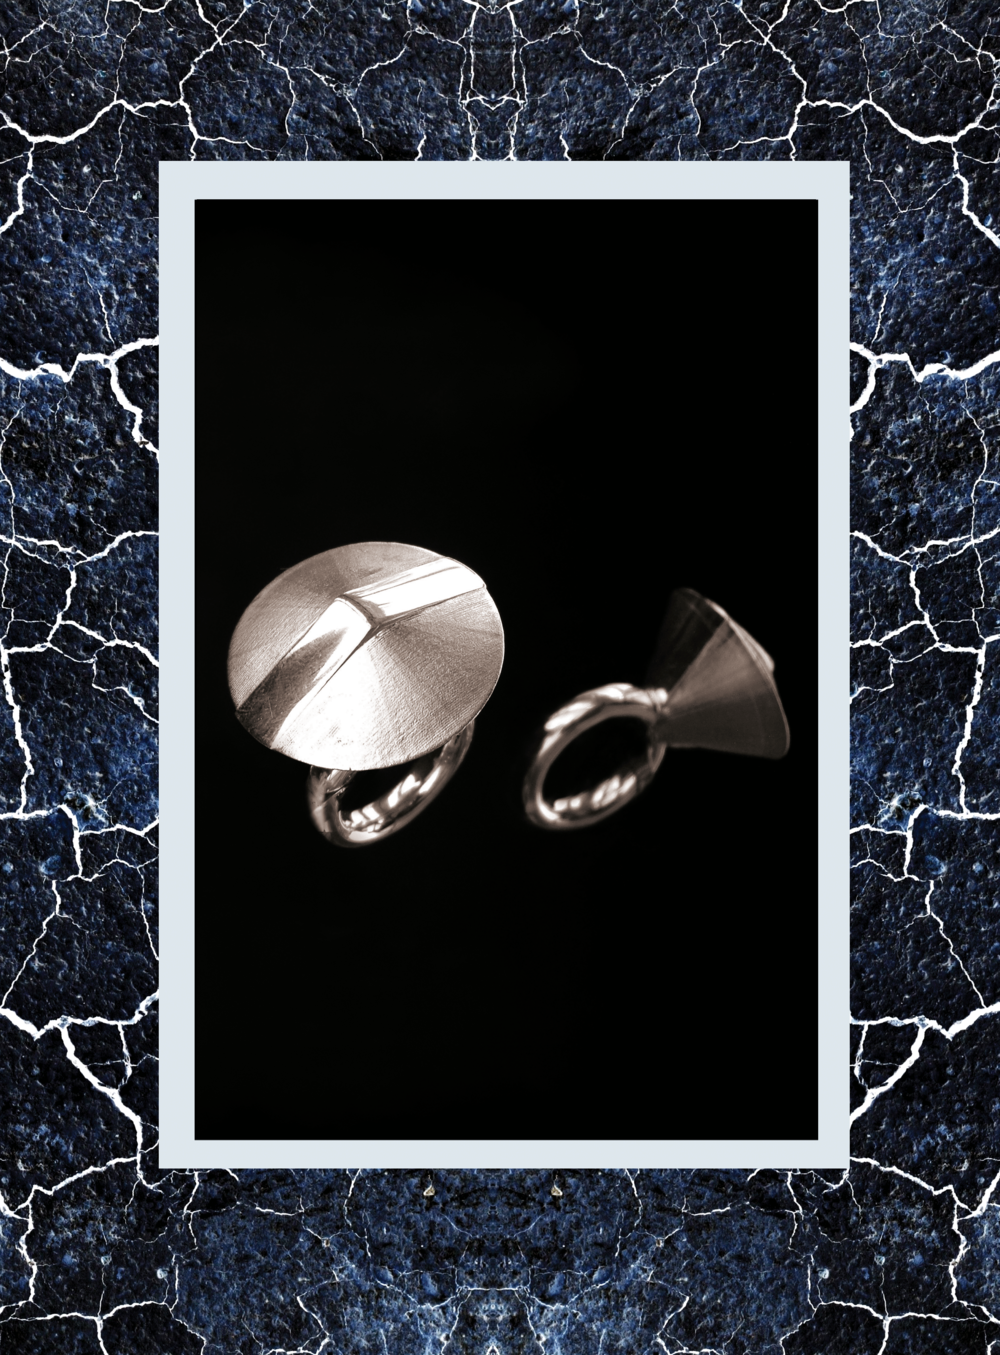 Simone-Brewster-softcrystal-silver-id2.png